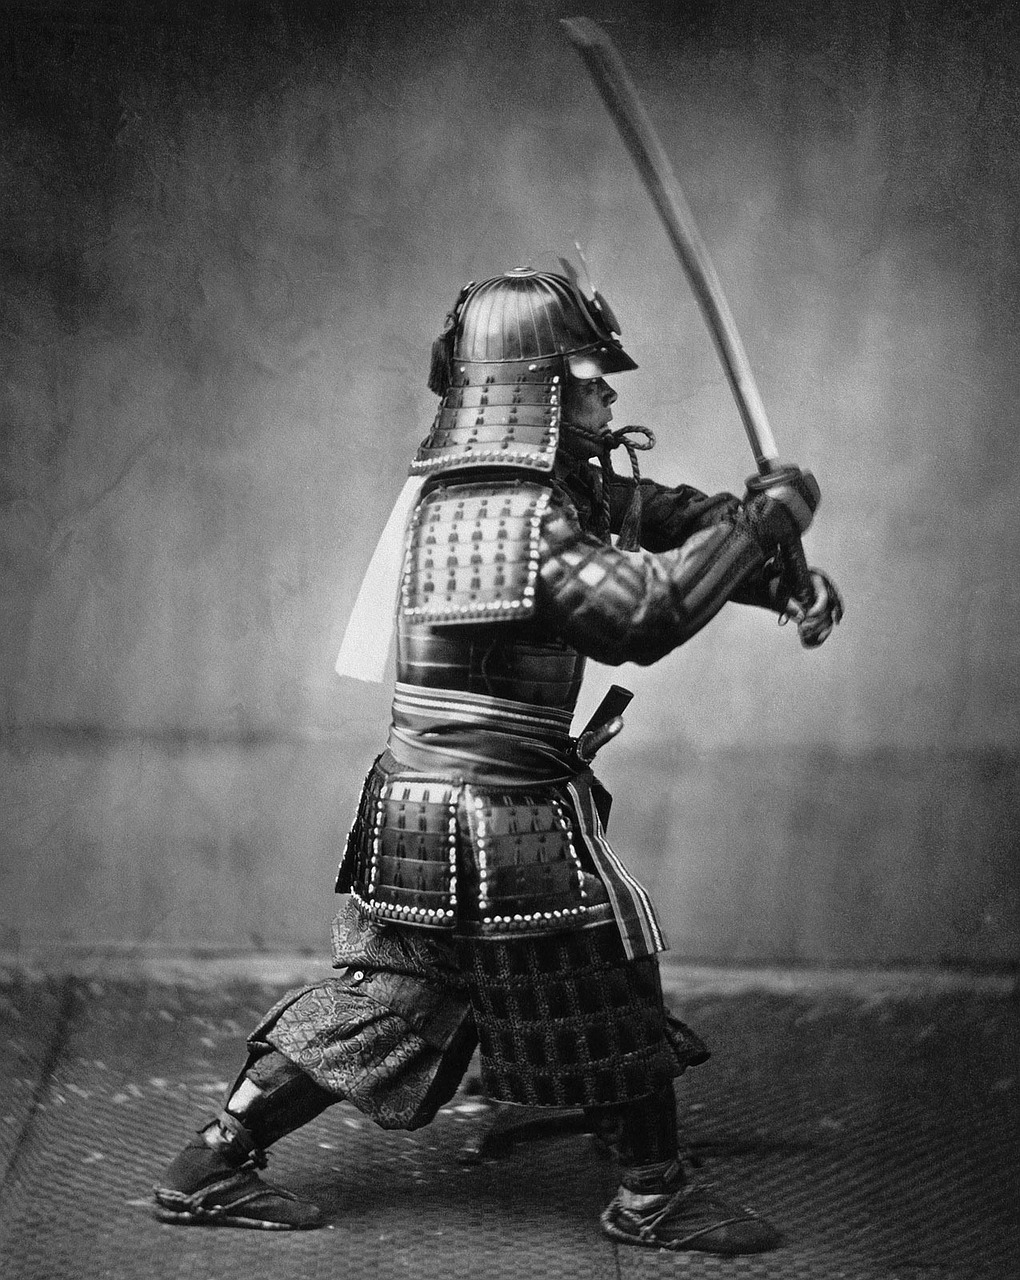 A samurai warrior wields his katana.